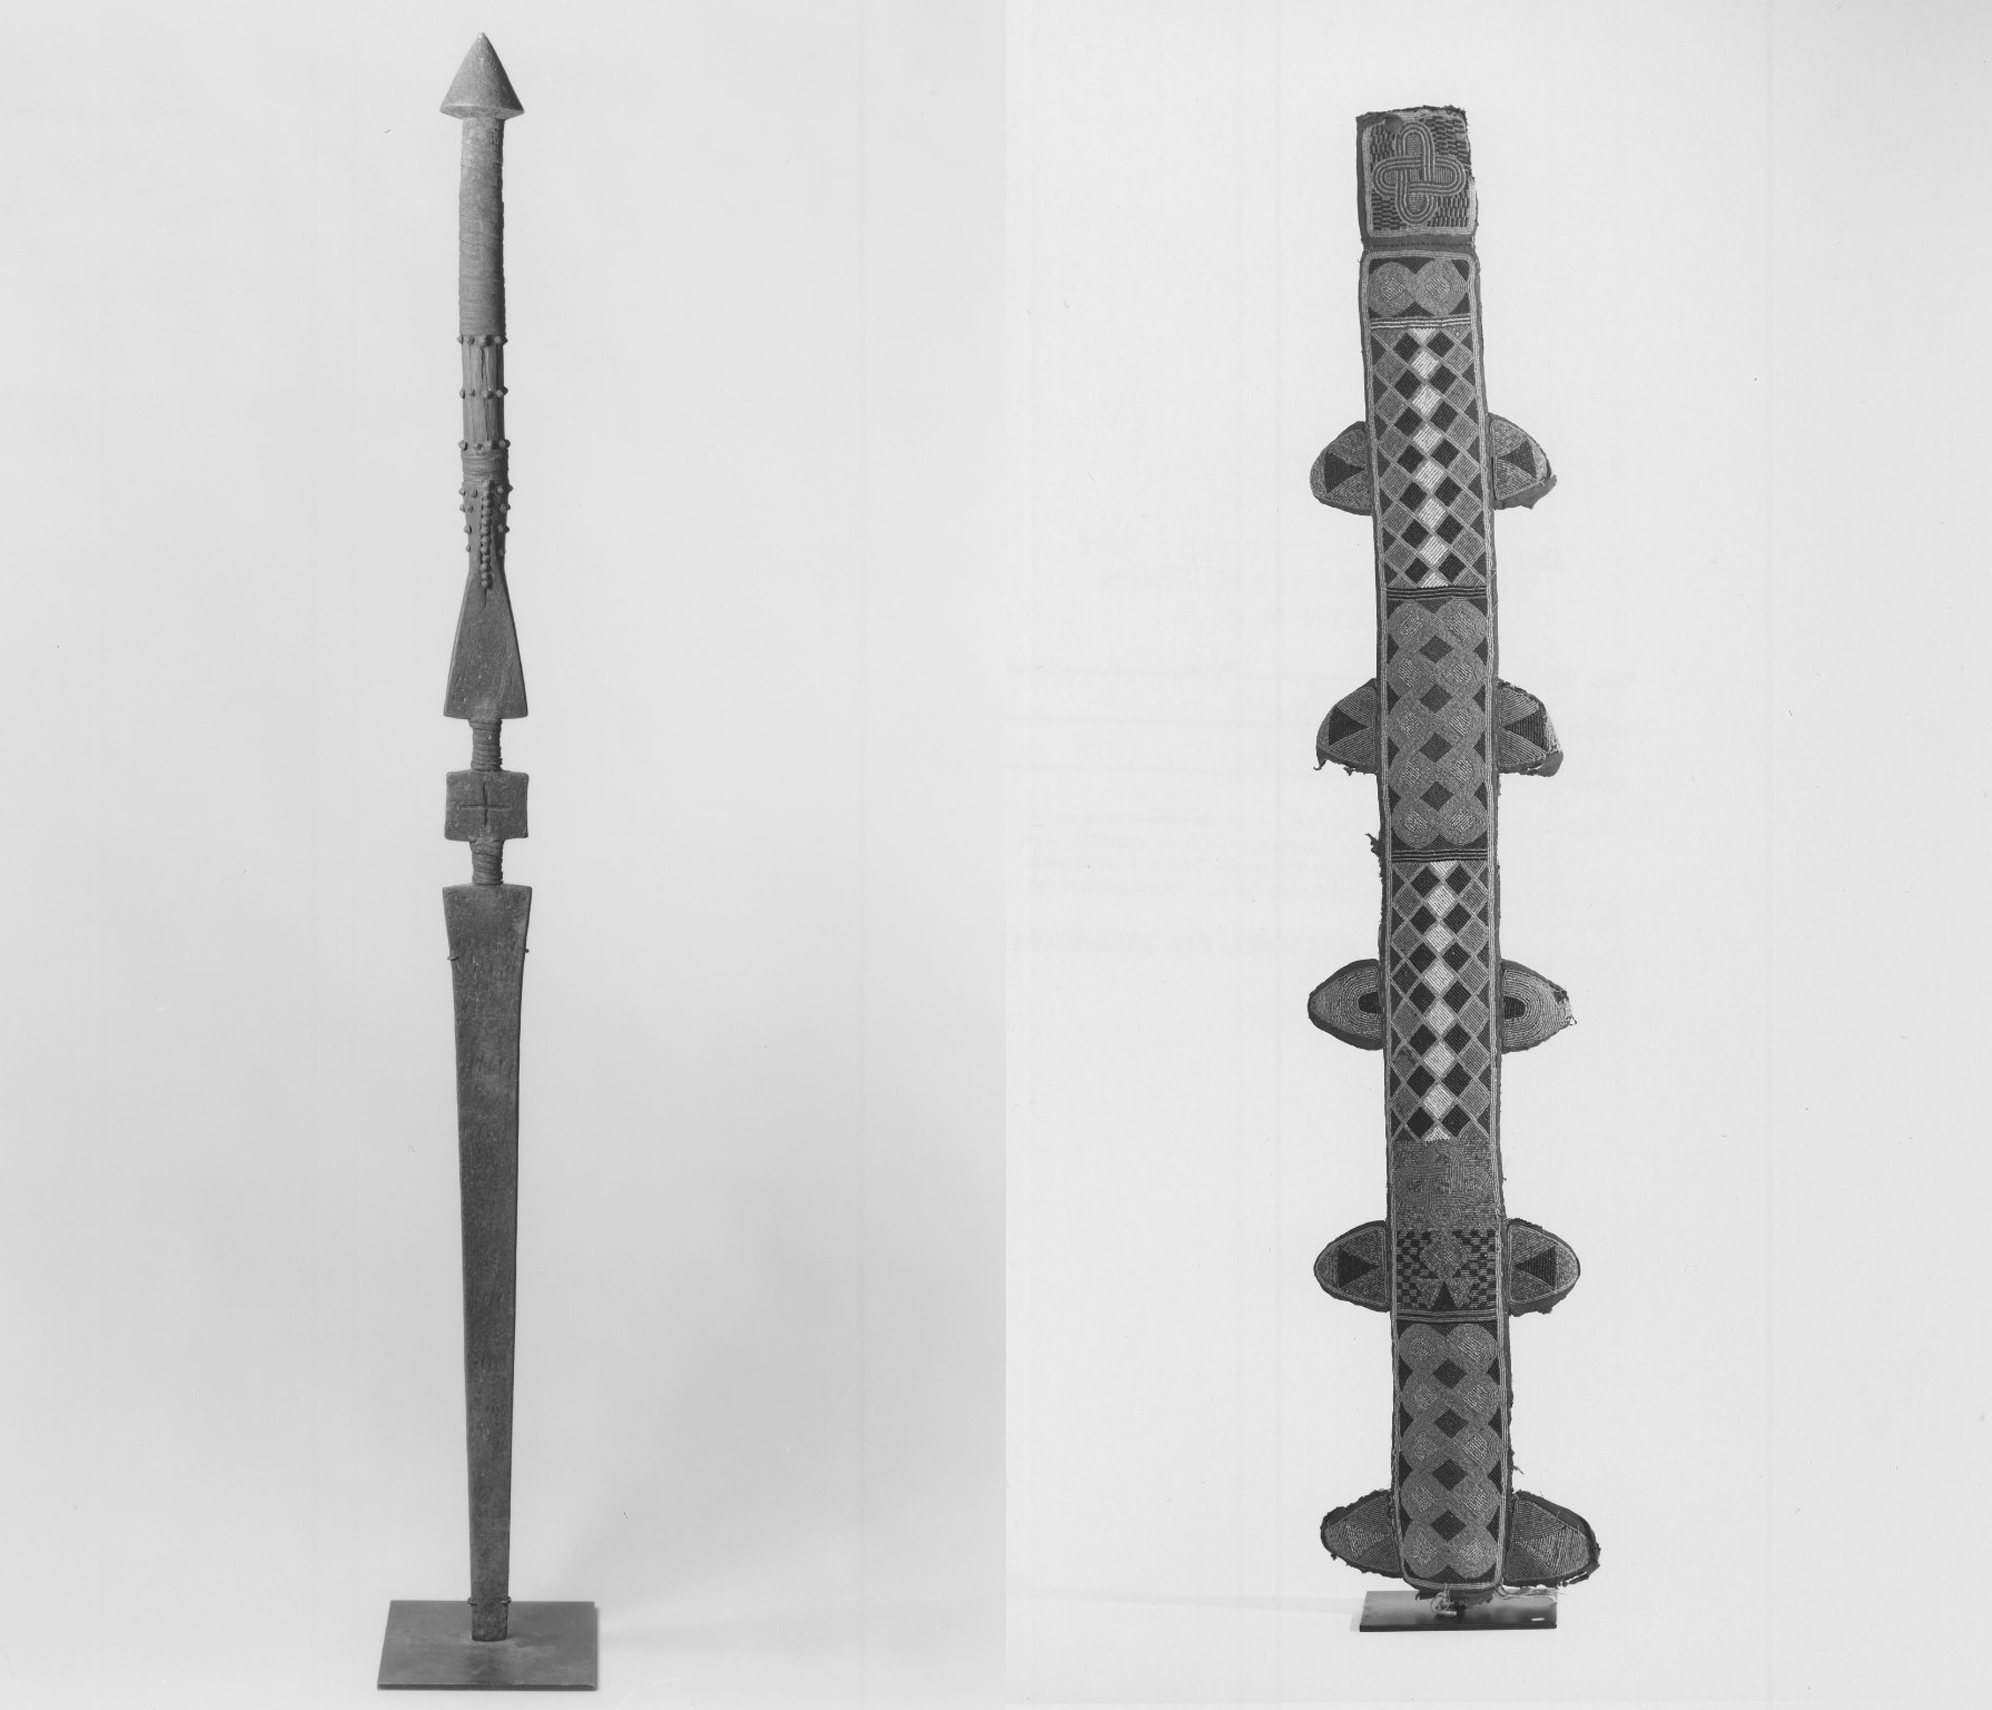 """An Ọ̀pá ÒrìṣàOko sword from the 19th century on the left,usually it is not mounted on a platform like here, it has man-height,the beaded sheath is on the right image. Images by  Brooklyn Museum Collection            96               Normal    0          21          false    false    false       DE    X-NONE    X-NONE                                                                                                                                                                                                                                                                                                                                                                                                                                                                                                                                                                                                                                                                                                                                                                                                                                                                                                                                                                                                                                                                                                                                                                                                                                                                                 /* Style Definitions */ table.MsoNormalTable {mso-style-name:""""Normale Tabelle""""; mso-tstyle-rowband-size:0; mso-tstyle-colband-size:0; mso-style-noshow:yes; mso-style-priority:99; mso-style-parent:""""""""; mso-padding-alt:0cm 5.4pt 0cm 5.4pt; mso-para-margin:0cm; mso-para-margin-bottom:.0001pt; mso-pagination:widow-orphan; font-size:12.0pt; font-family:Calibri; mso-ascii-font-family:Calibri; mso-ascii-theme-font:minor-latin; mso-hansi-font-family:Cali"""